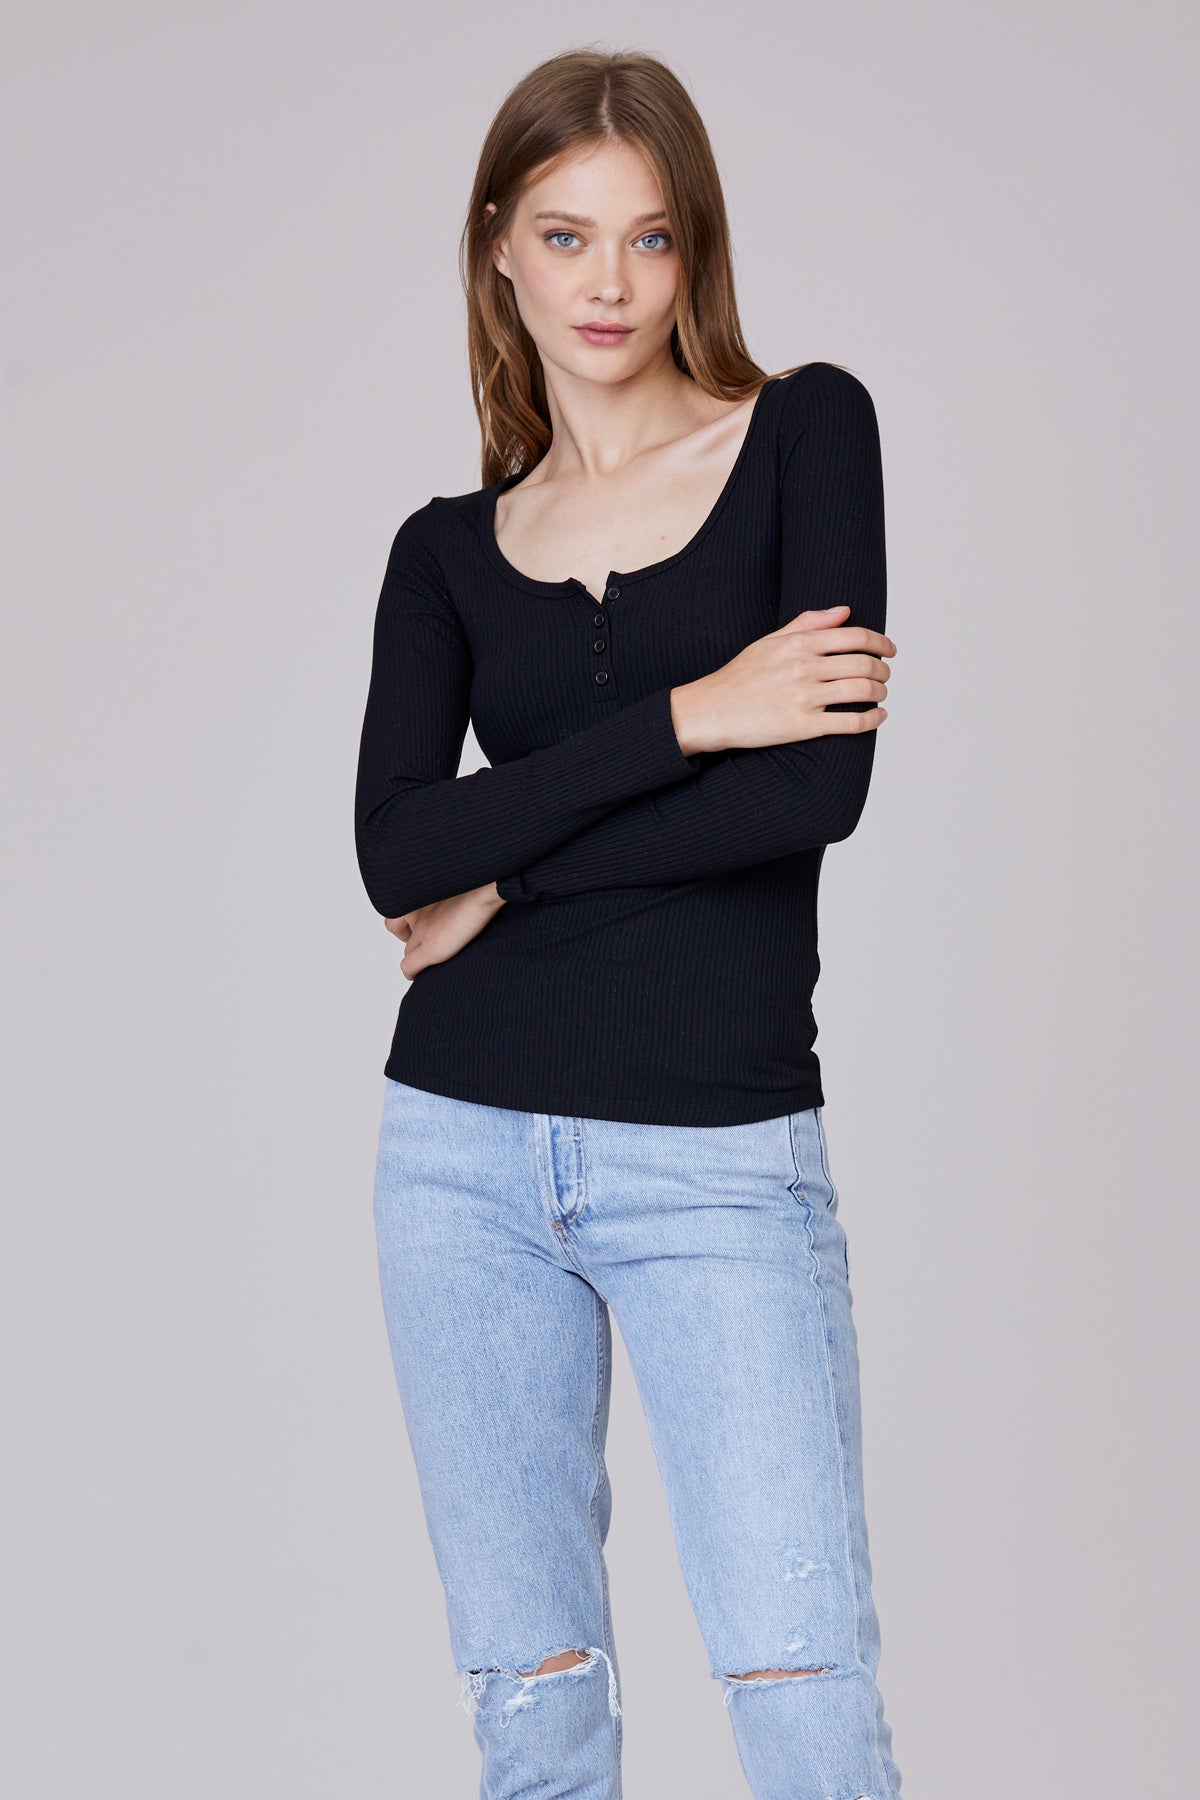 LNA Chiselle Ribbed Henley Top in Black